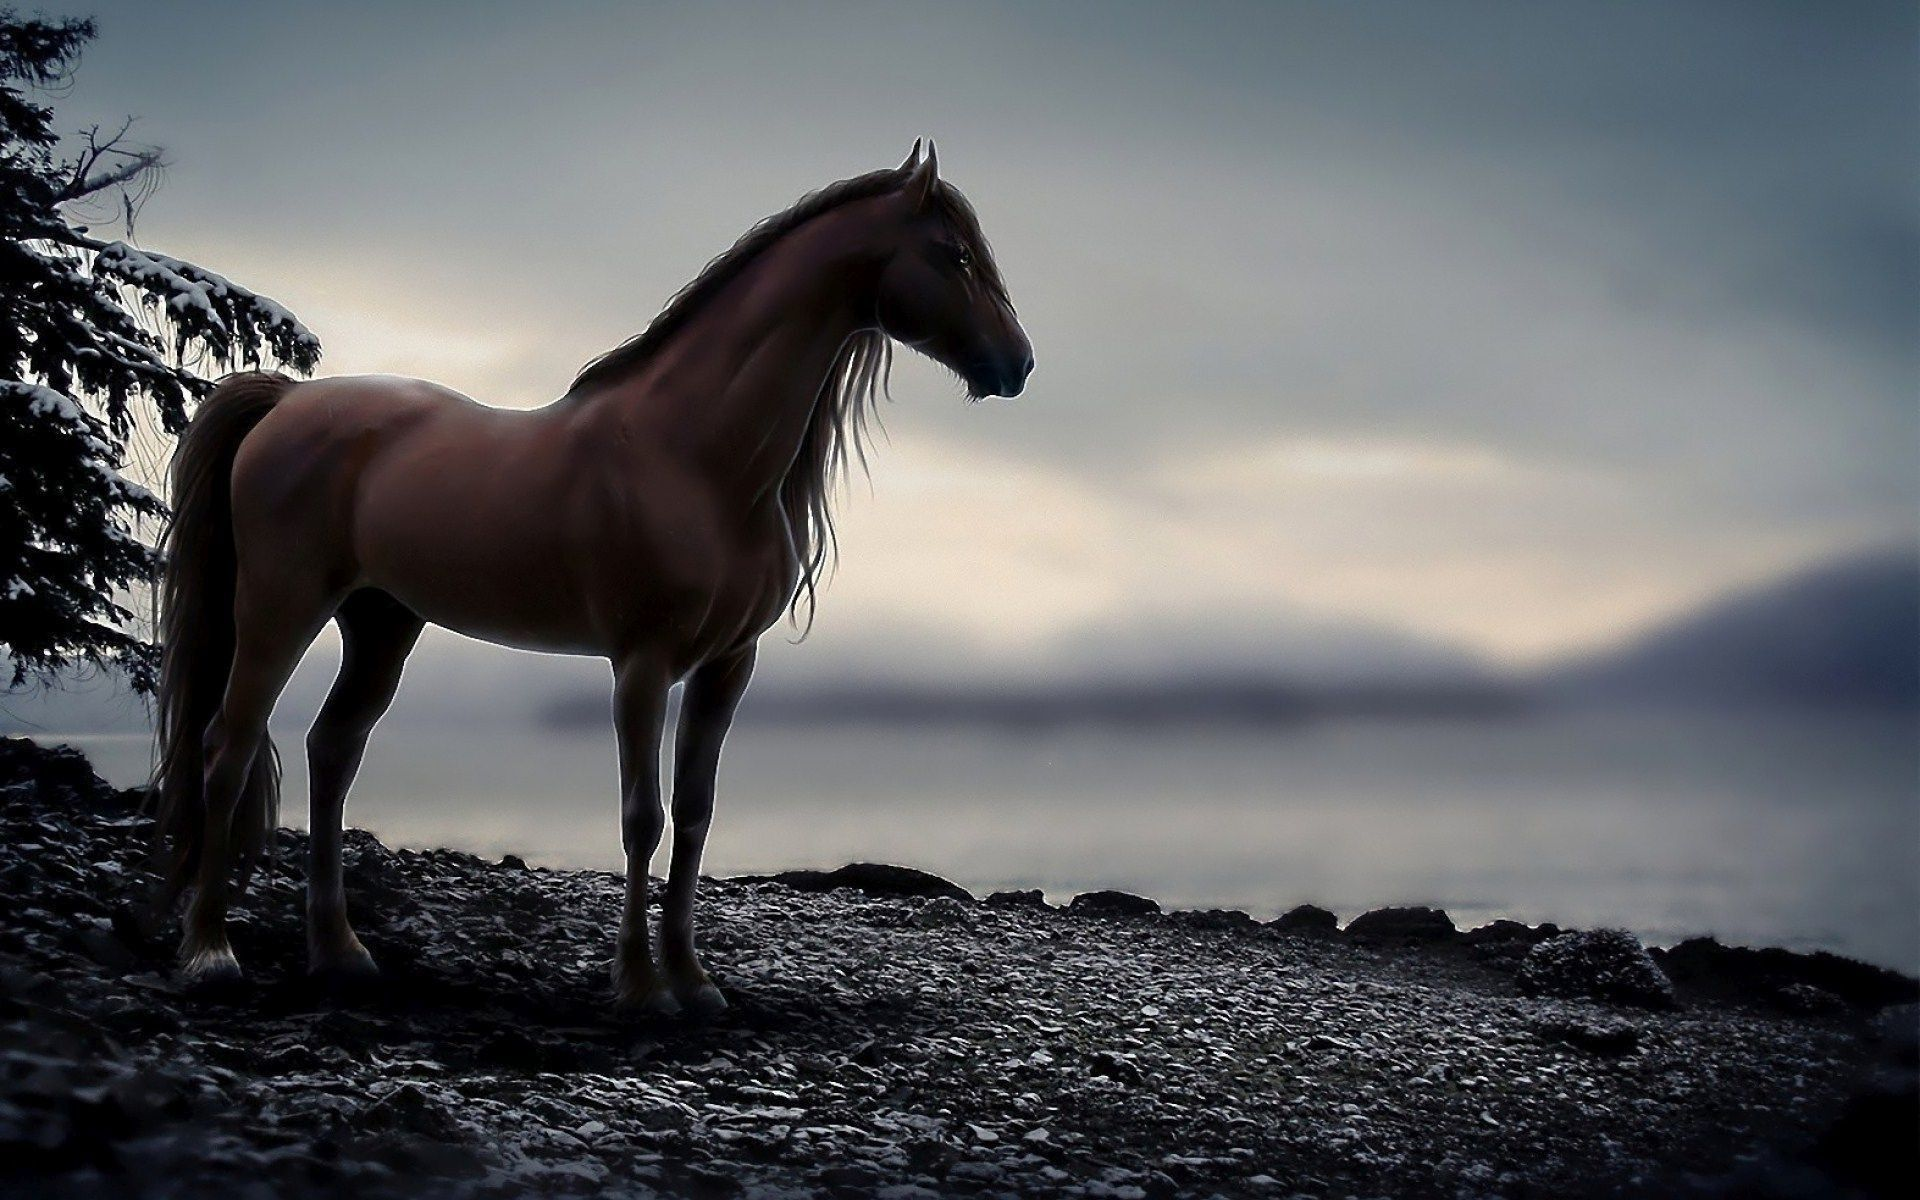 4k Ipad Pro Wallpapers Group 55 Download For Free Horse Wallpaper Horses Horse Background